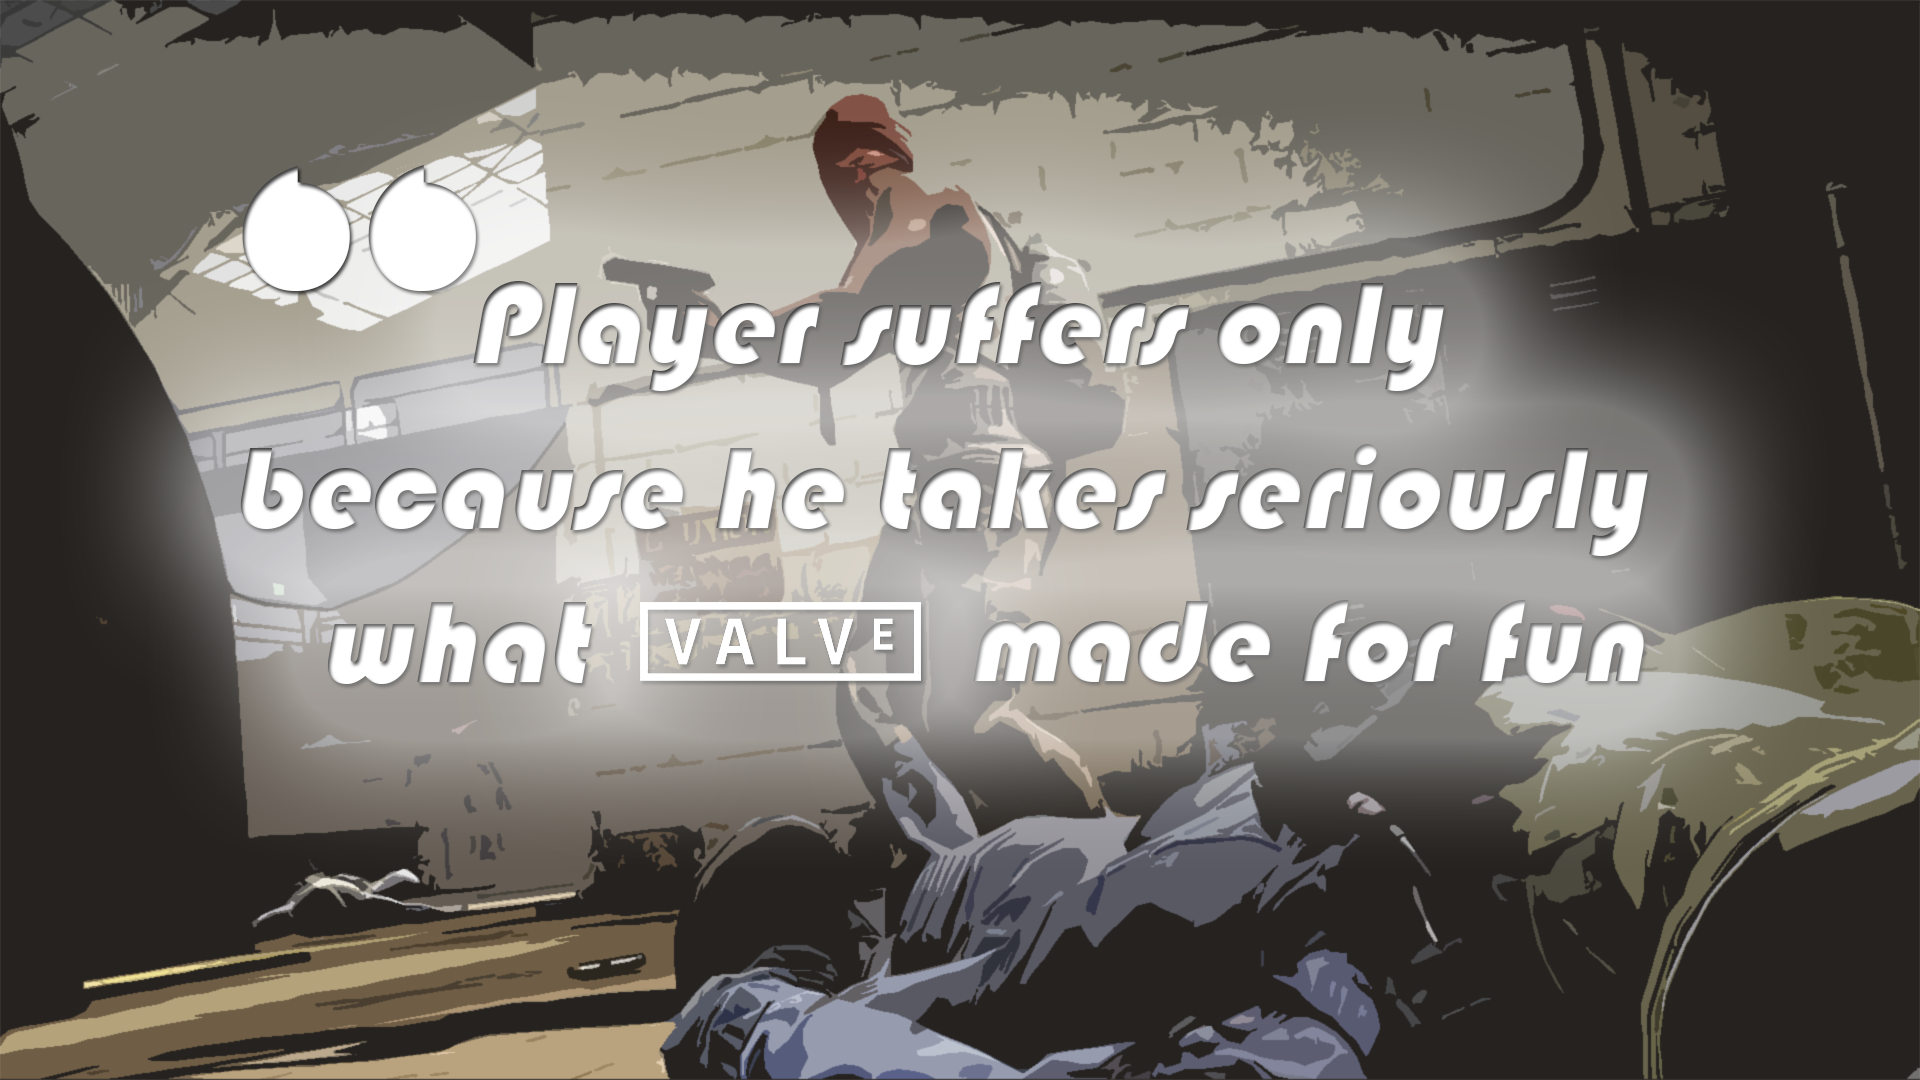 Player suffer